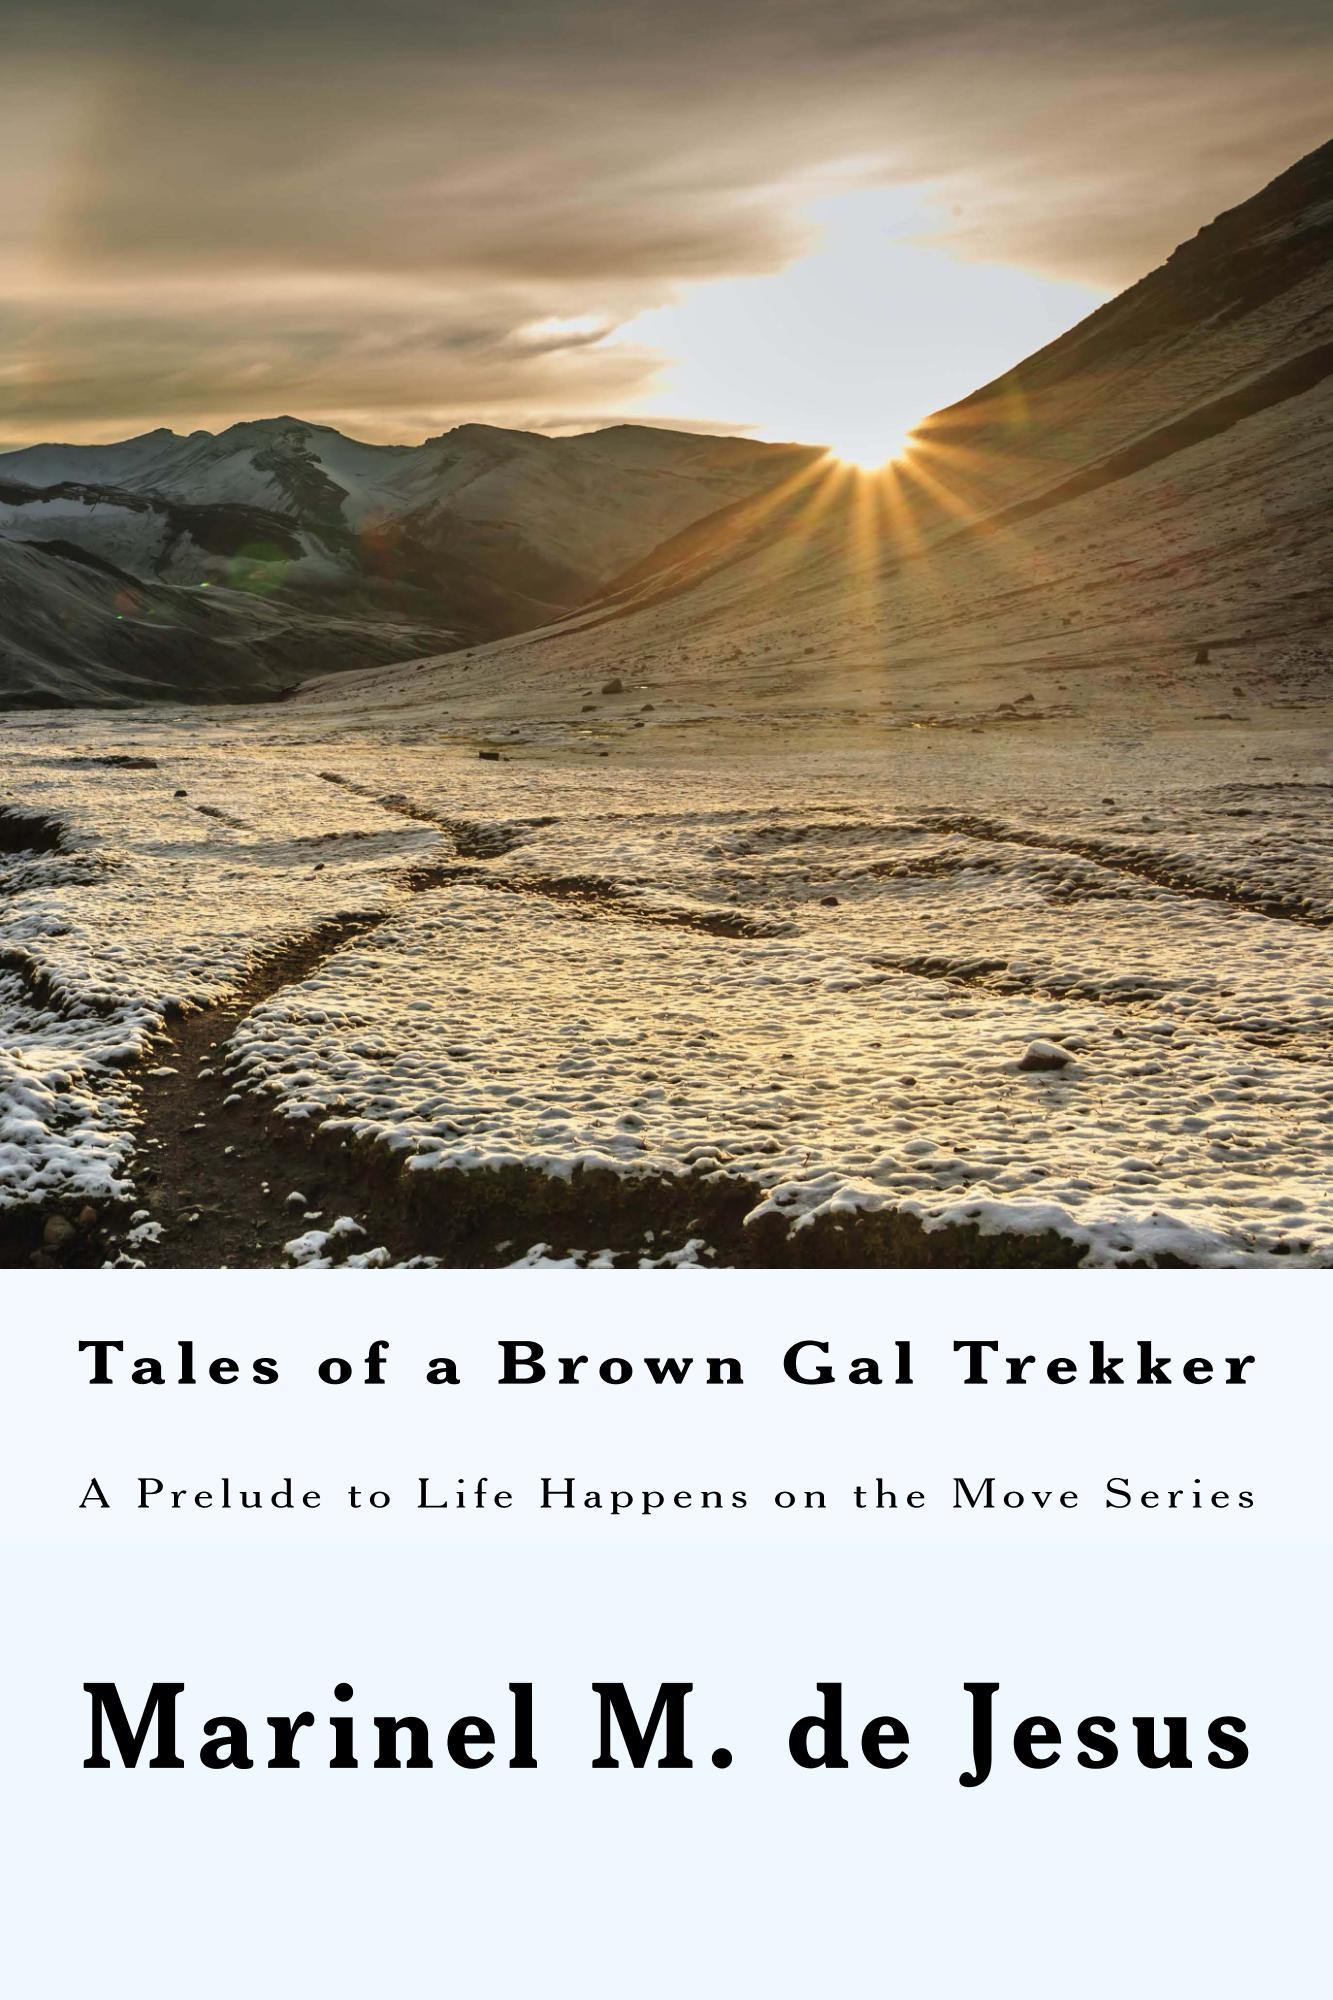 Tales of a Brown Gal Trekker is a collection of travel essays and poetry as a reflection on Marinel's journey as a mountain trekker over the past 15 years. - This is a prelude to her upcoming Life Happens on the Move book series which tackles the role of fear in our lives and how in her world she made a conscious decision to overcome each and every fear that holds her back. As a practicing attorney, quitting her stable legal career to become a nomad has been the most challenging decision for her to make. How does one overcome the fear of taking that leap of faith? What inspires someone to make such a radical shift in her life? This introduction to her book series gives readers a glimpse of Brown Gal's psyche and unconventional approach to life. The book further showcases photos in full color of places and mountains that inspired Brown Gal Trekker along the way. Tales of a Brown Gal Trekker is available in Kindle and paperback versions. Get your copy now.